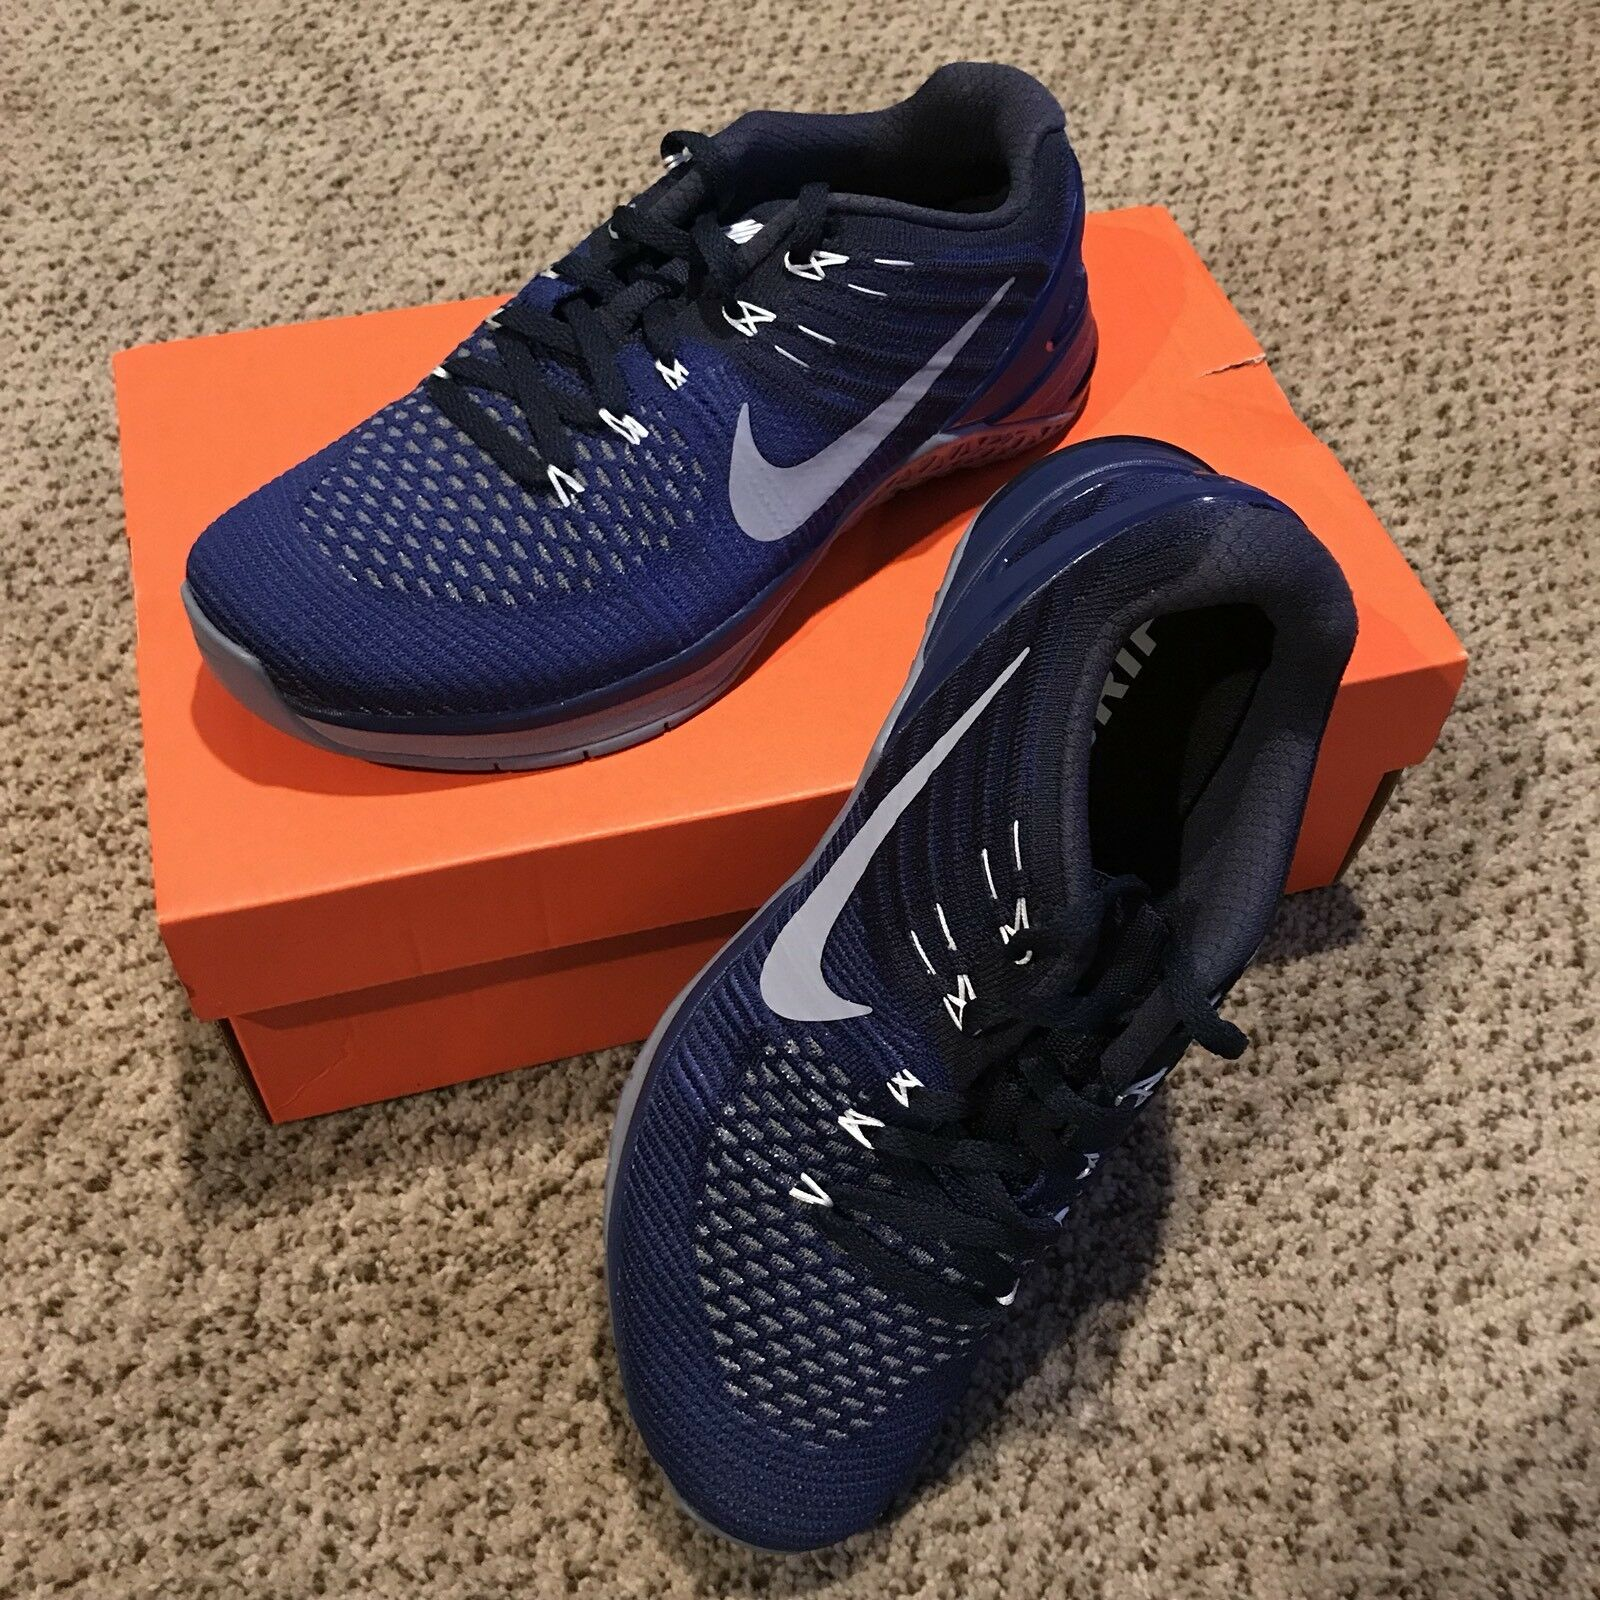 flyknit royal chaussures nike metcon dsx chez noir bleu royal flyknit 852930-403 formation taille 7,5 0bb123